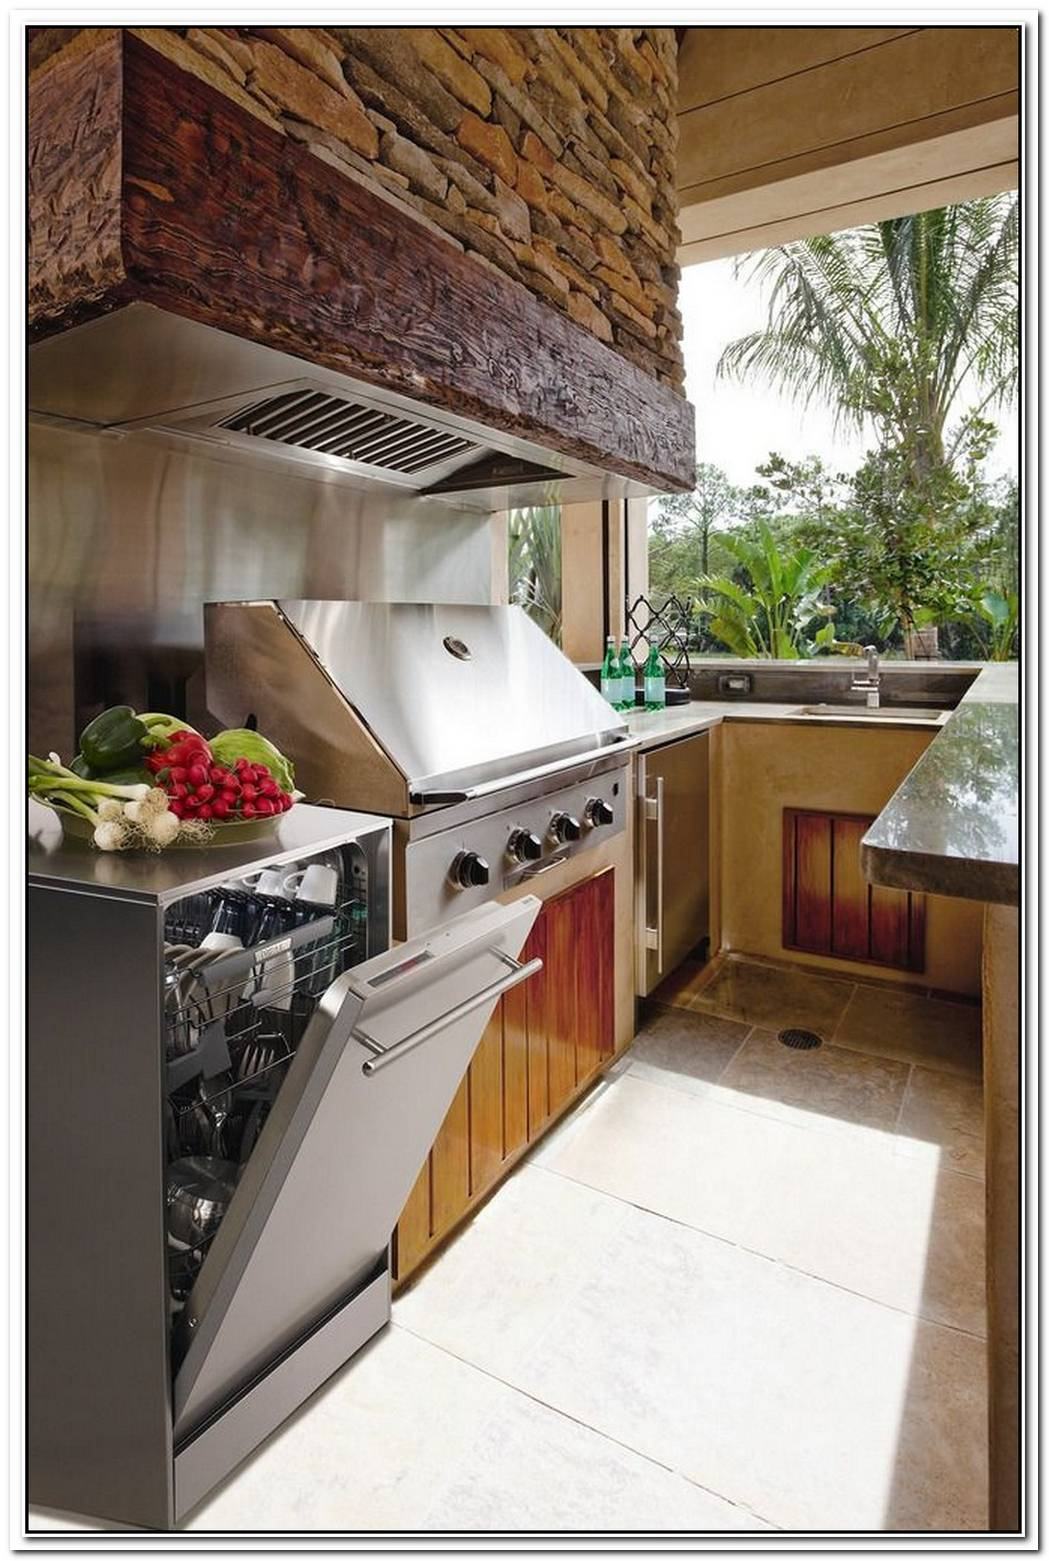 You, Too, Can Have An Outdoor Kitchen